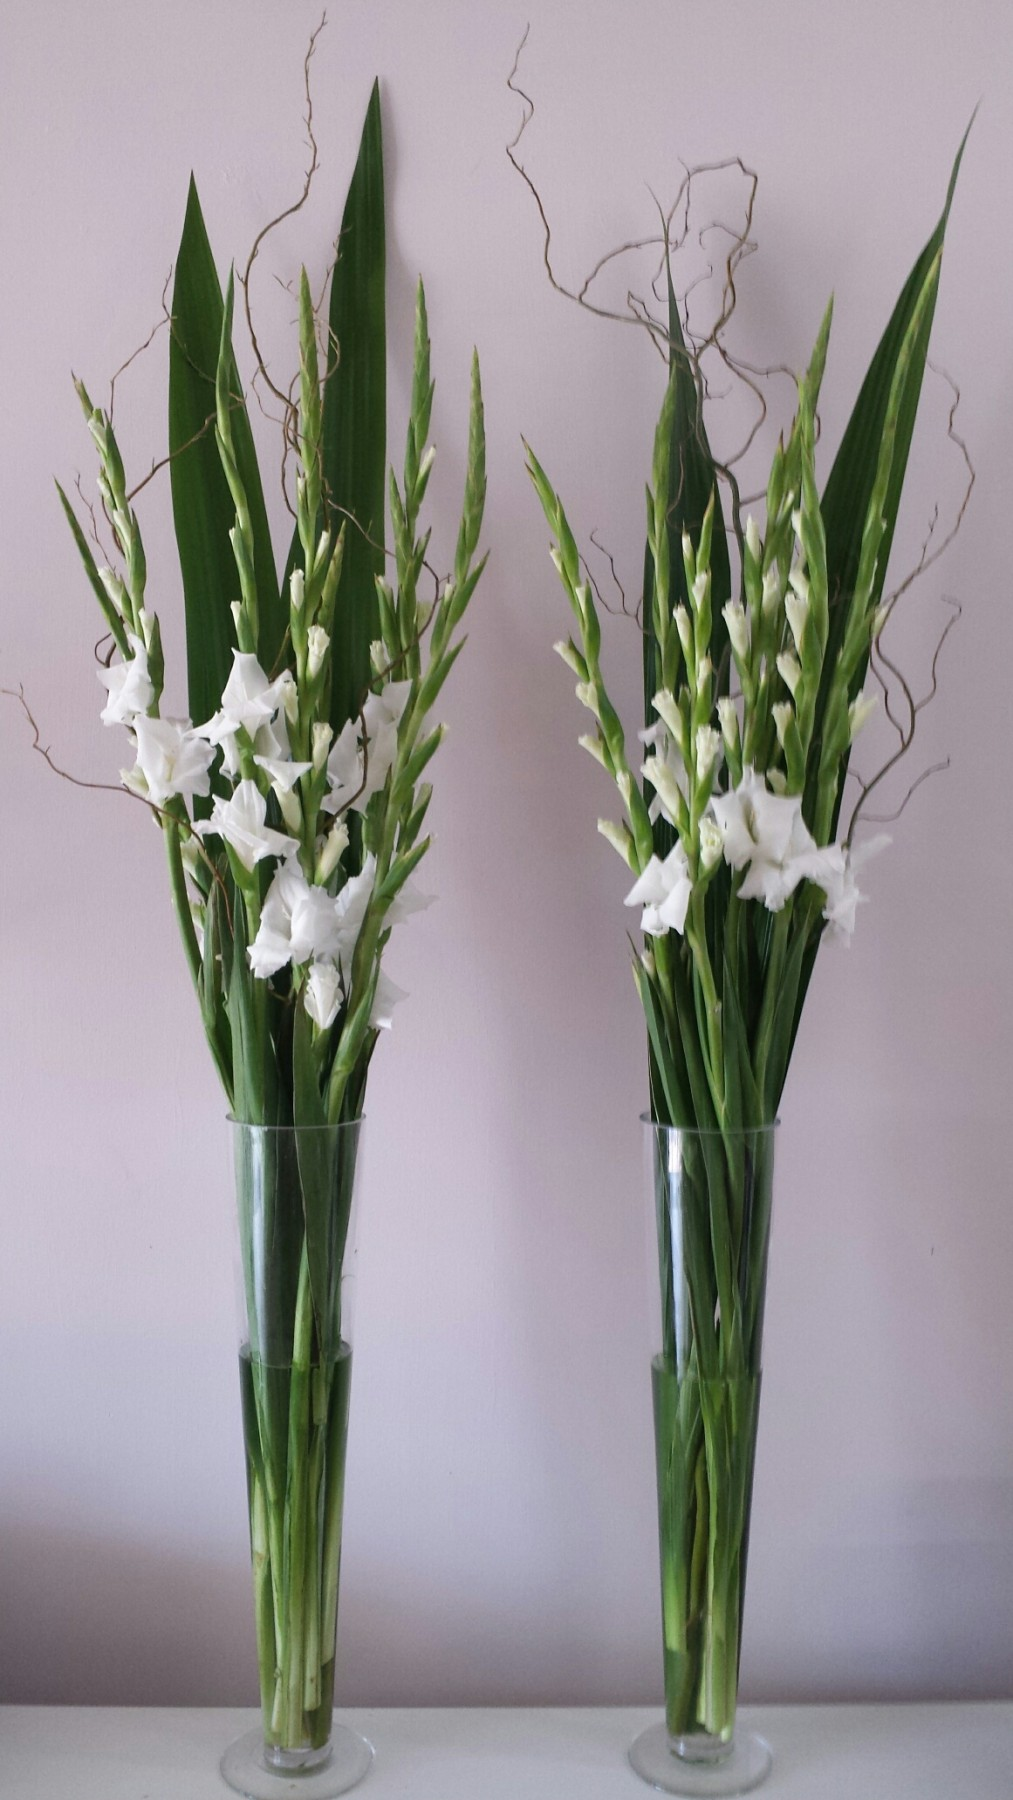 white gladys and gymea leaves in tall glass vases